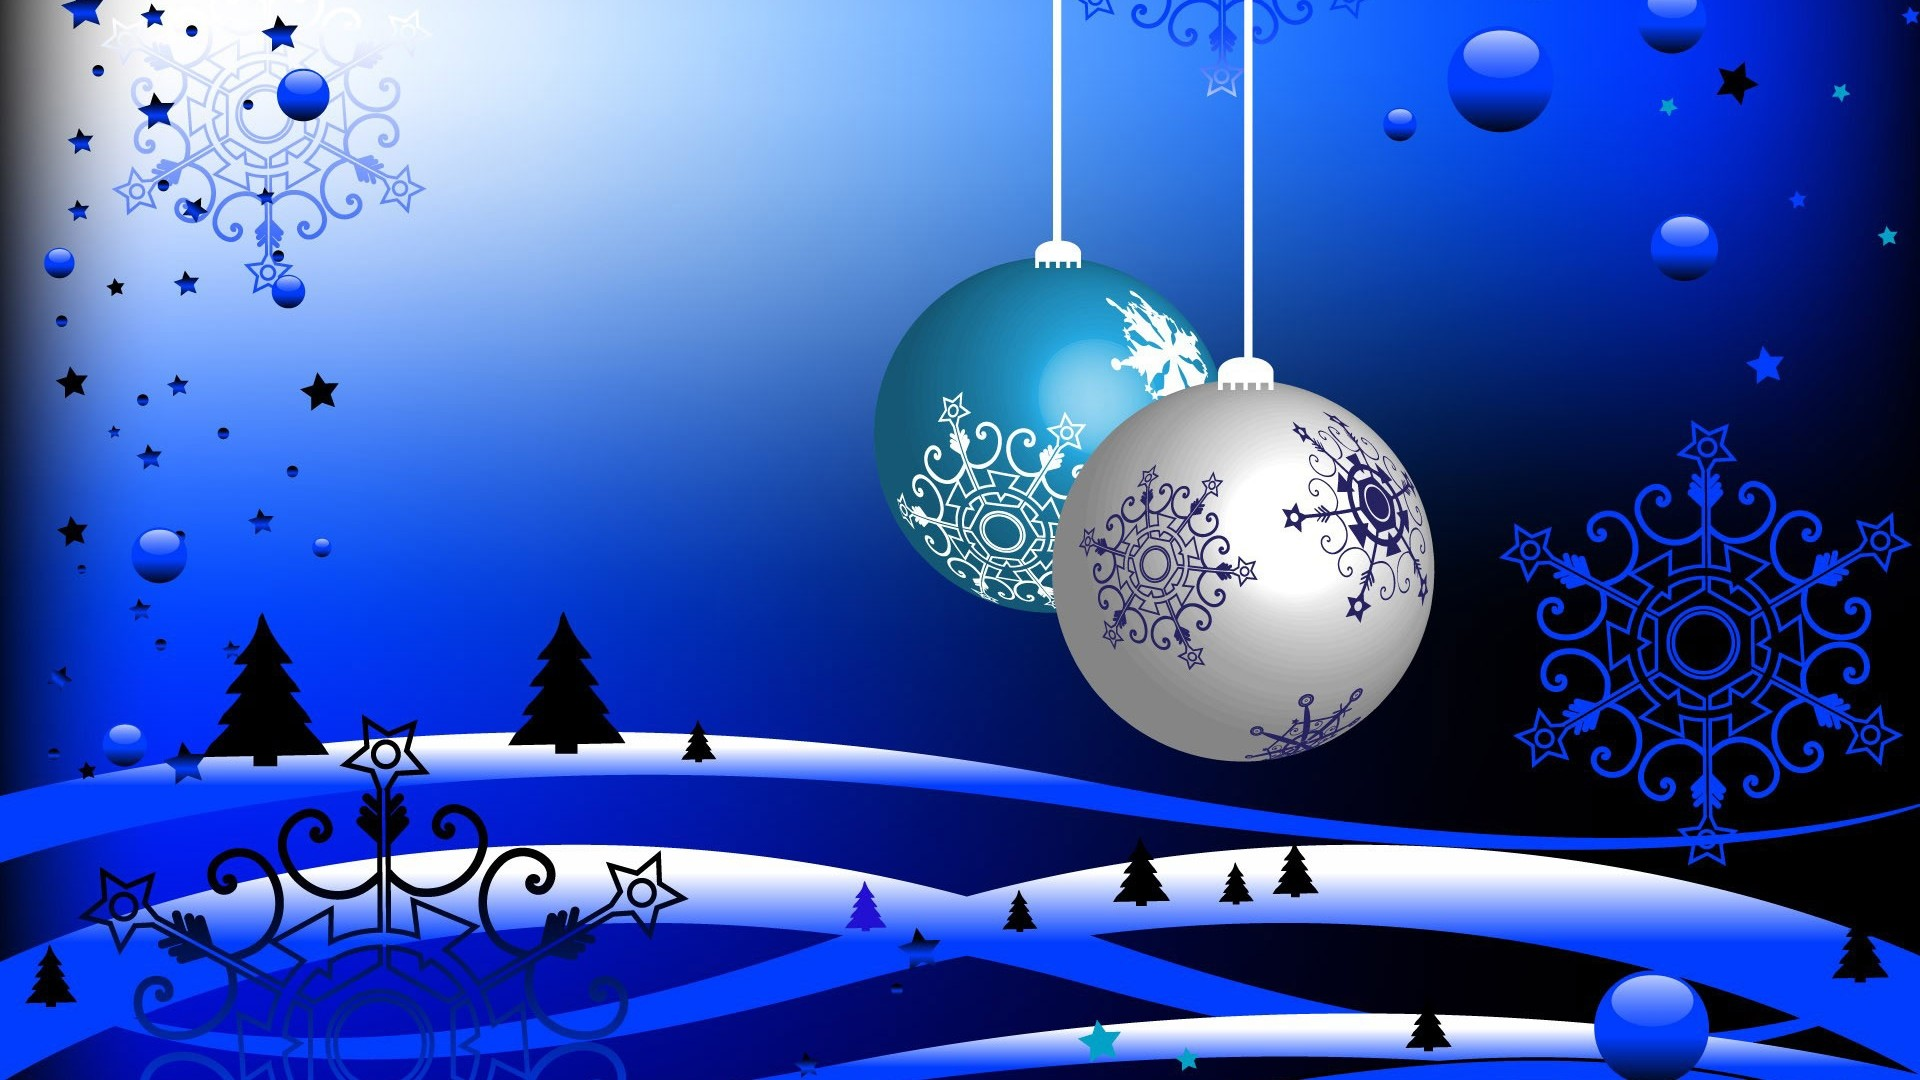 Animated Christmas Wallpaper Backgrounds 55 images 1920x1080